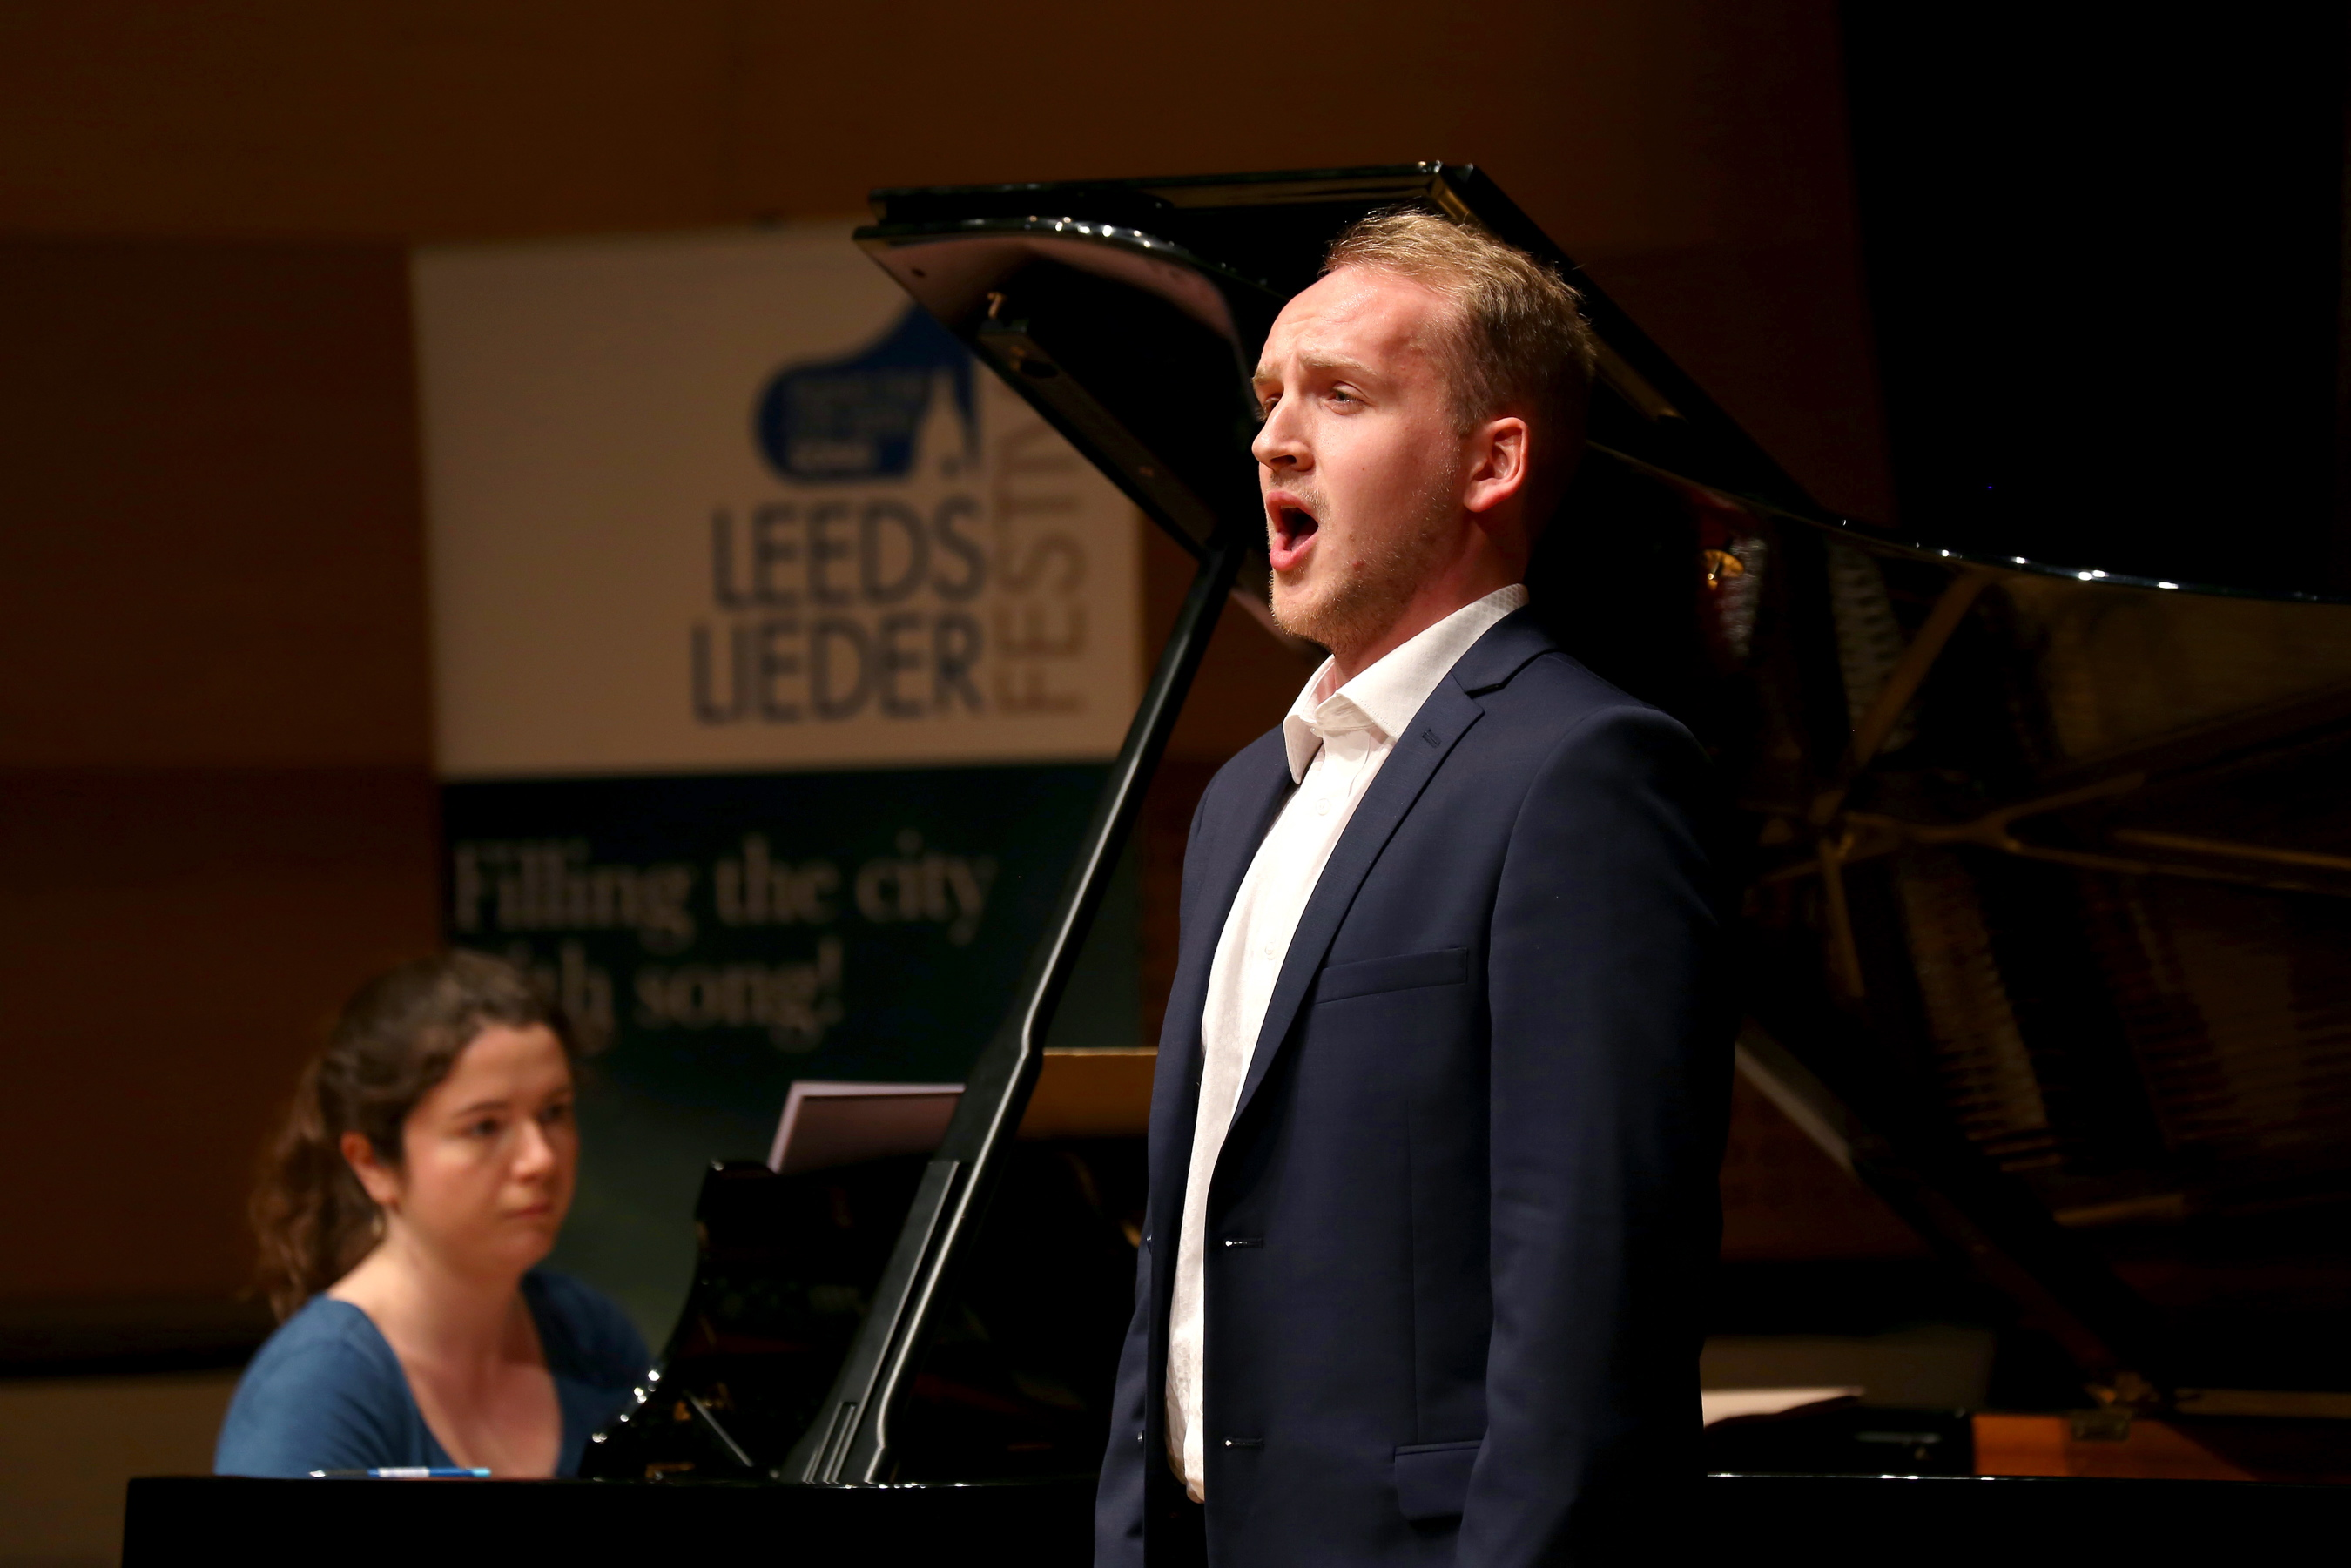 Peter Edge at Leeds Lieder